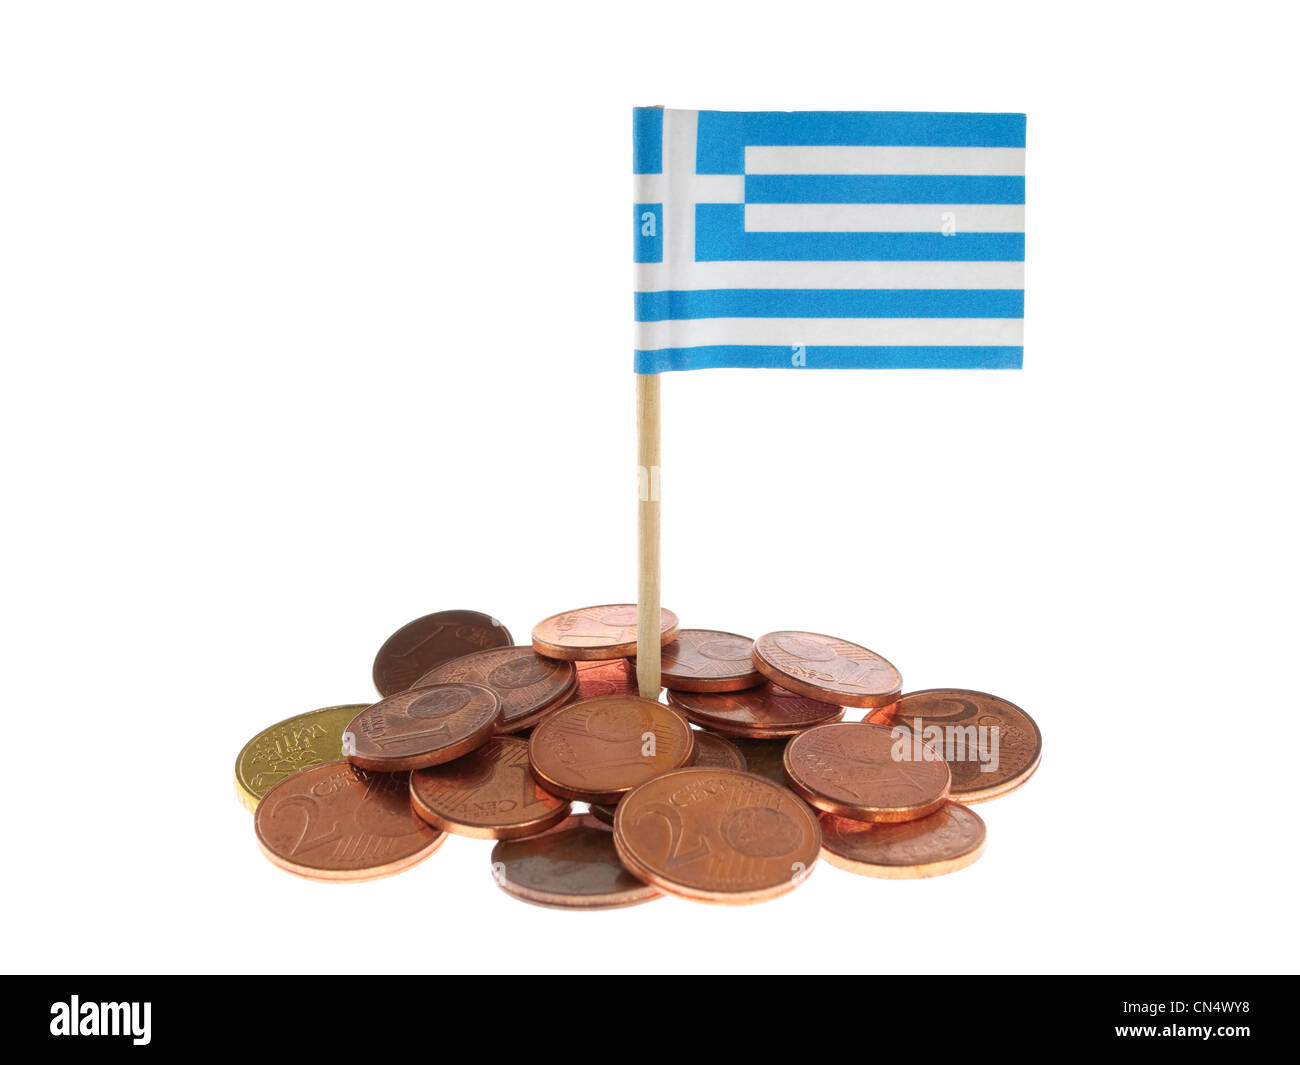 Greek Financial Crisis - Stock Image